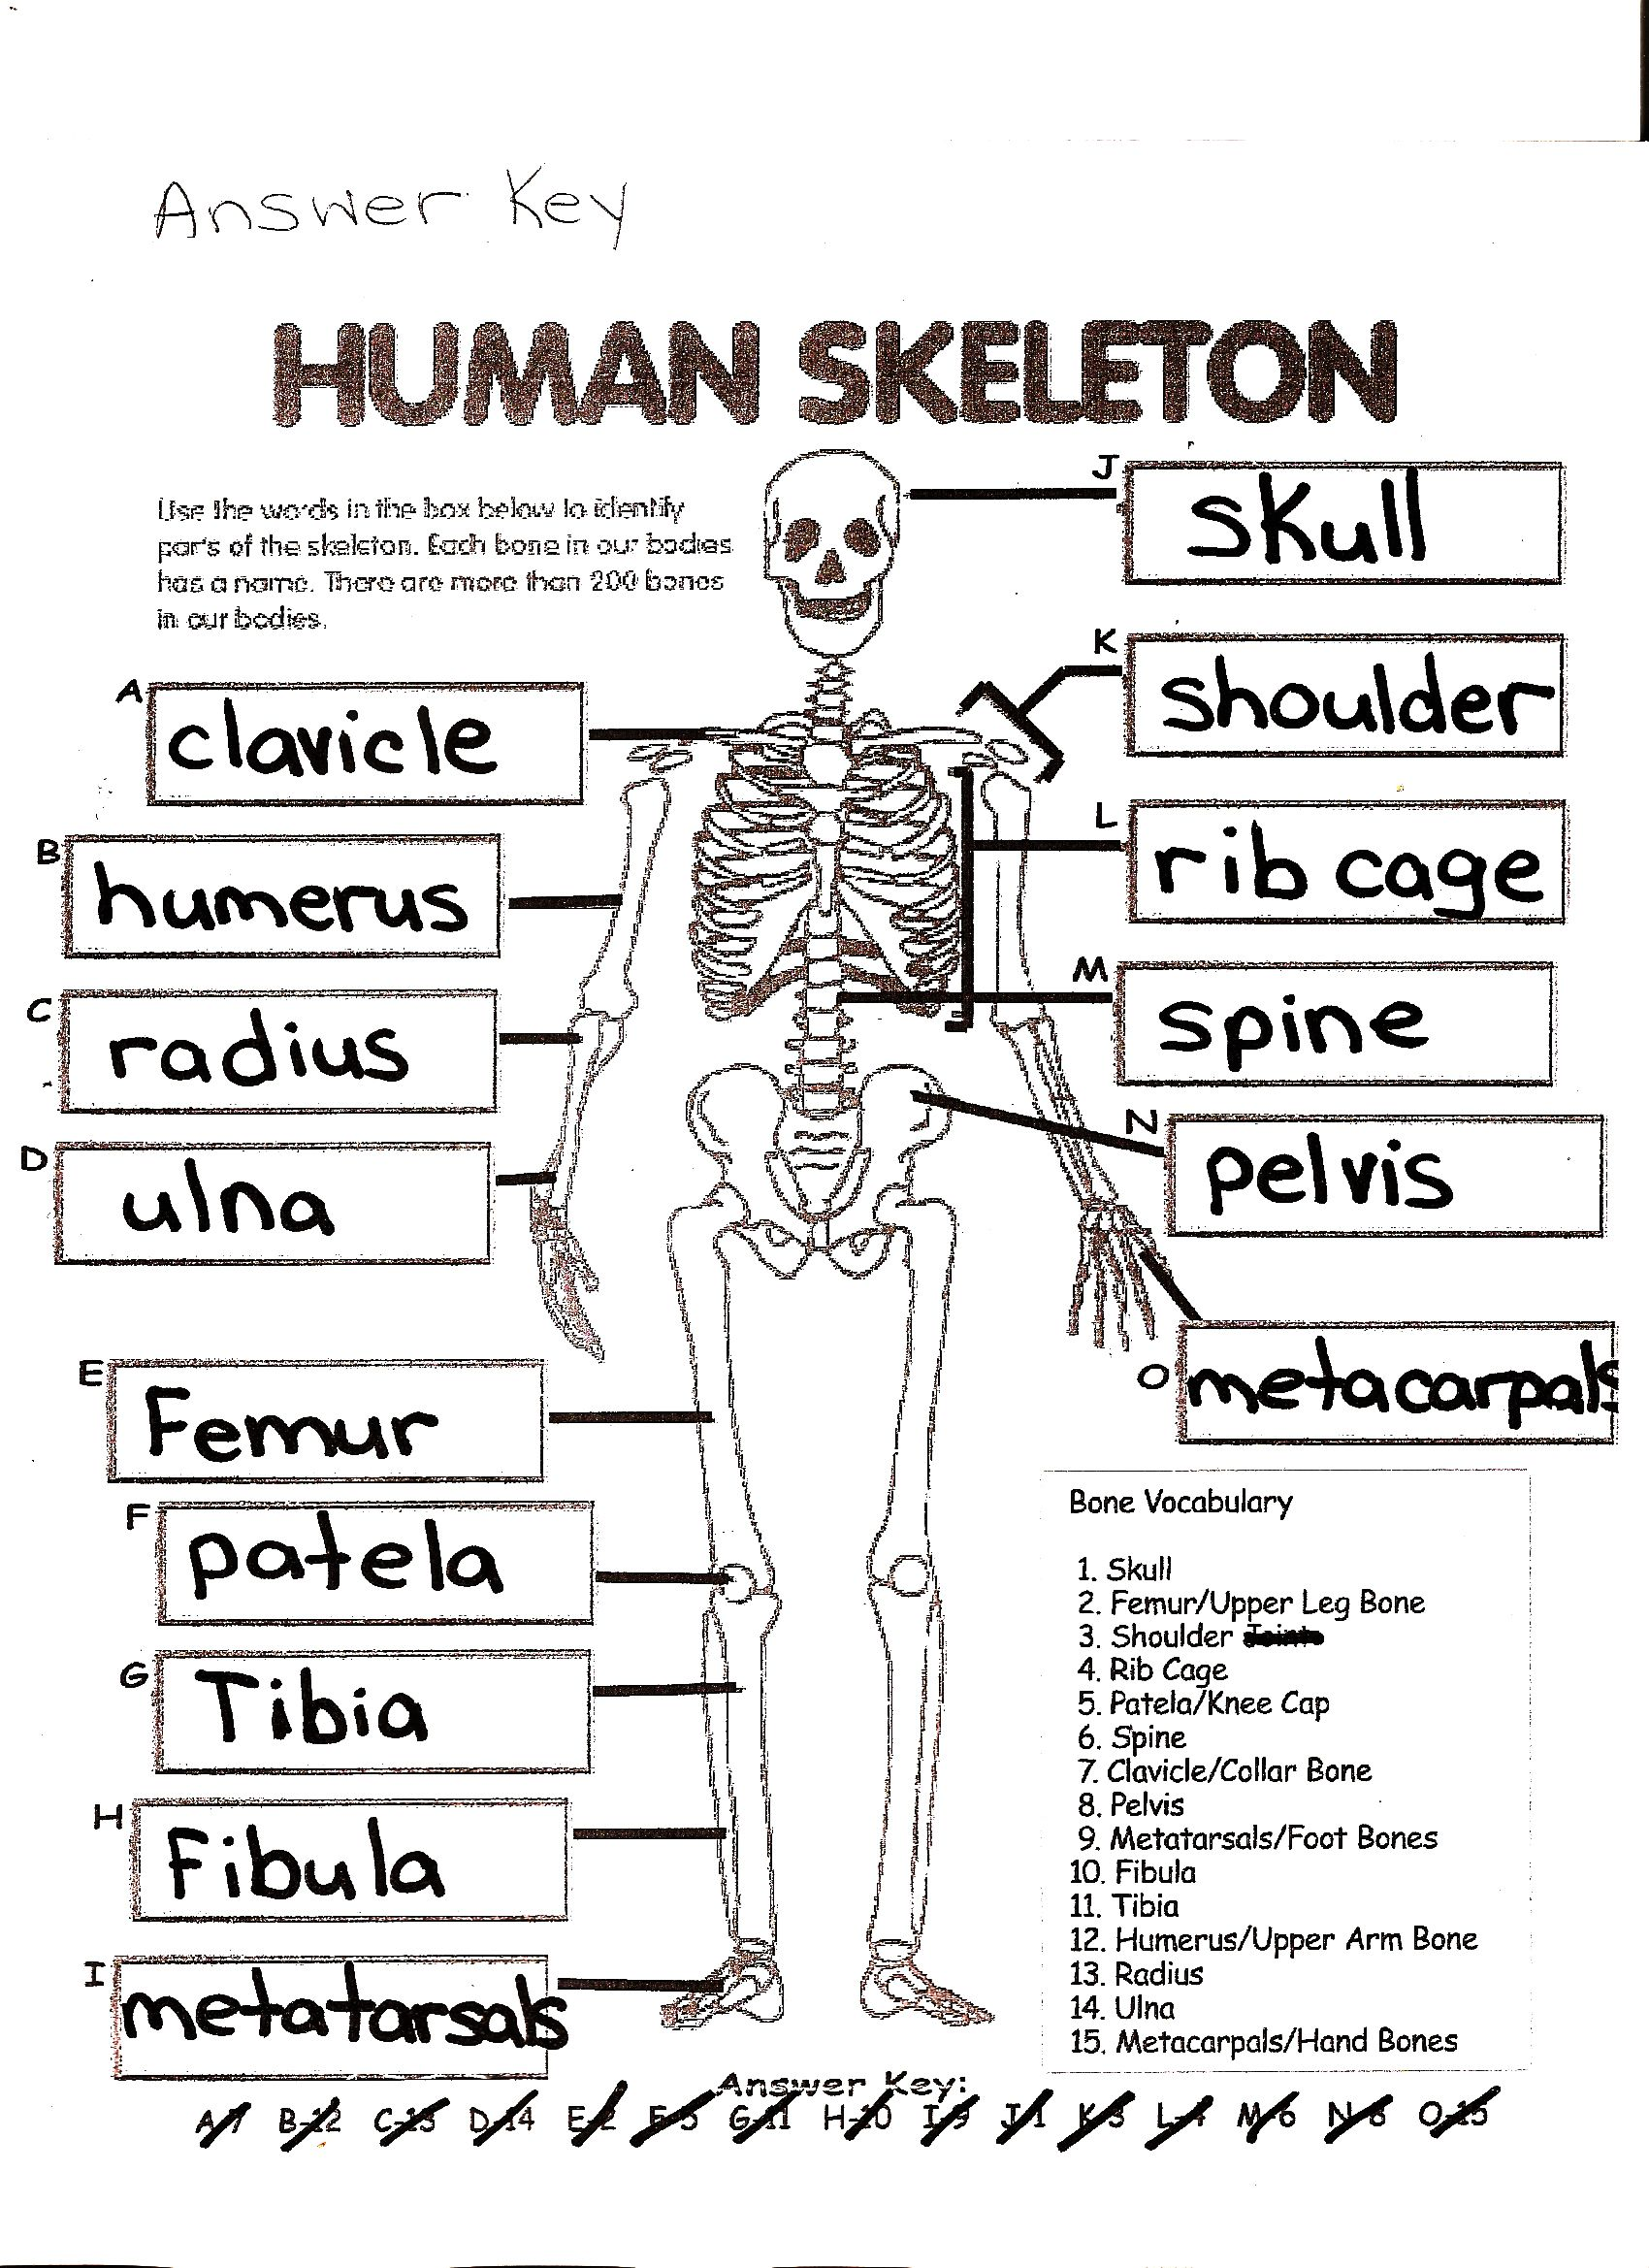 Another Skeleton Worksheet With Images